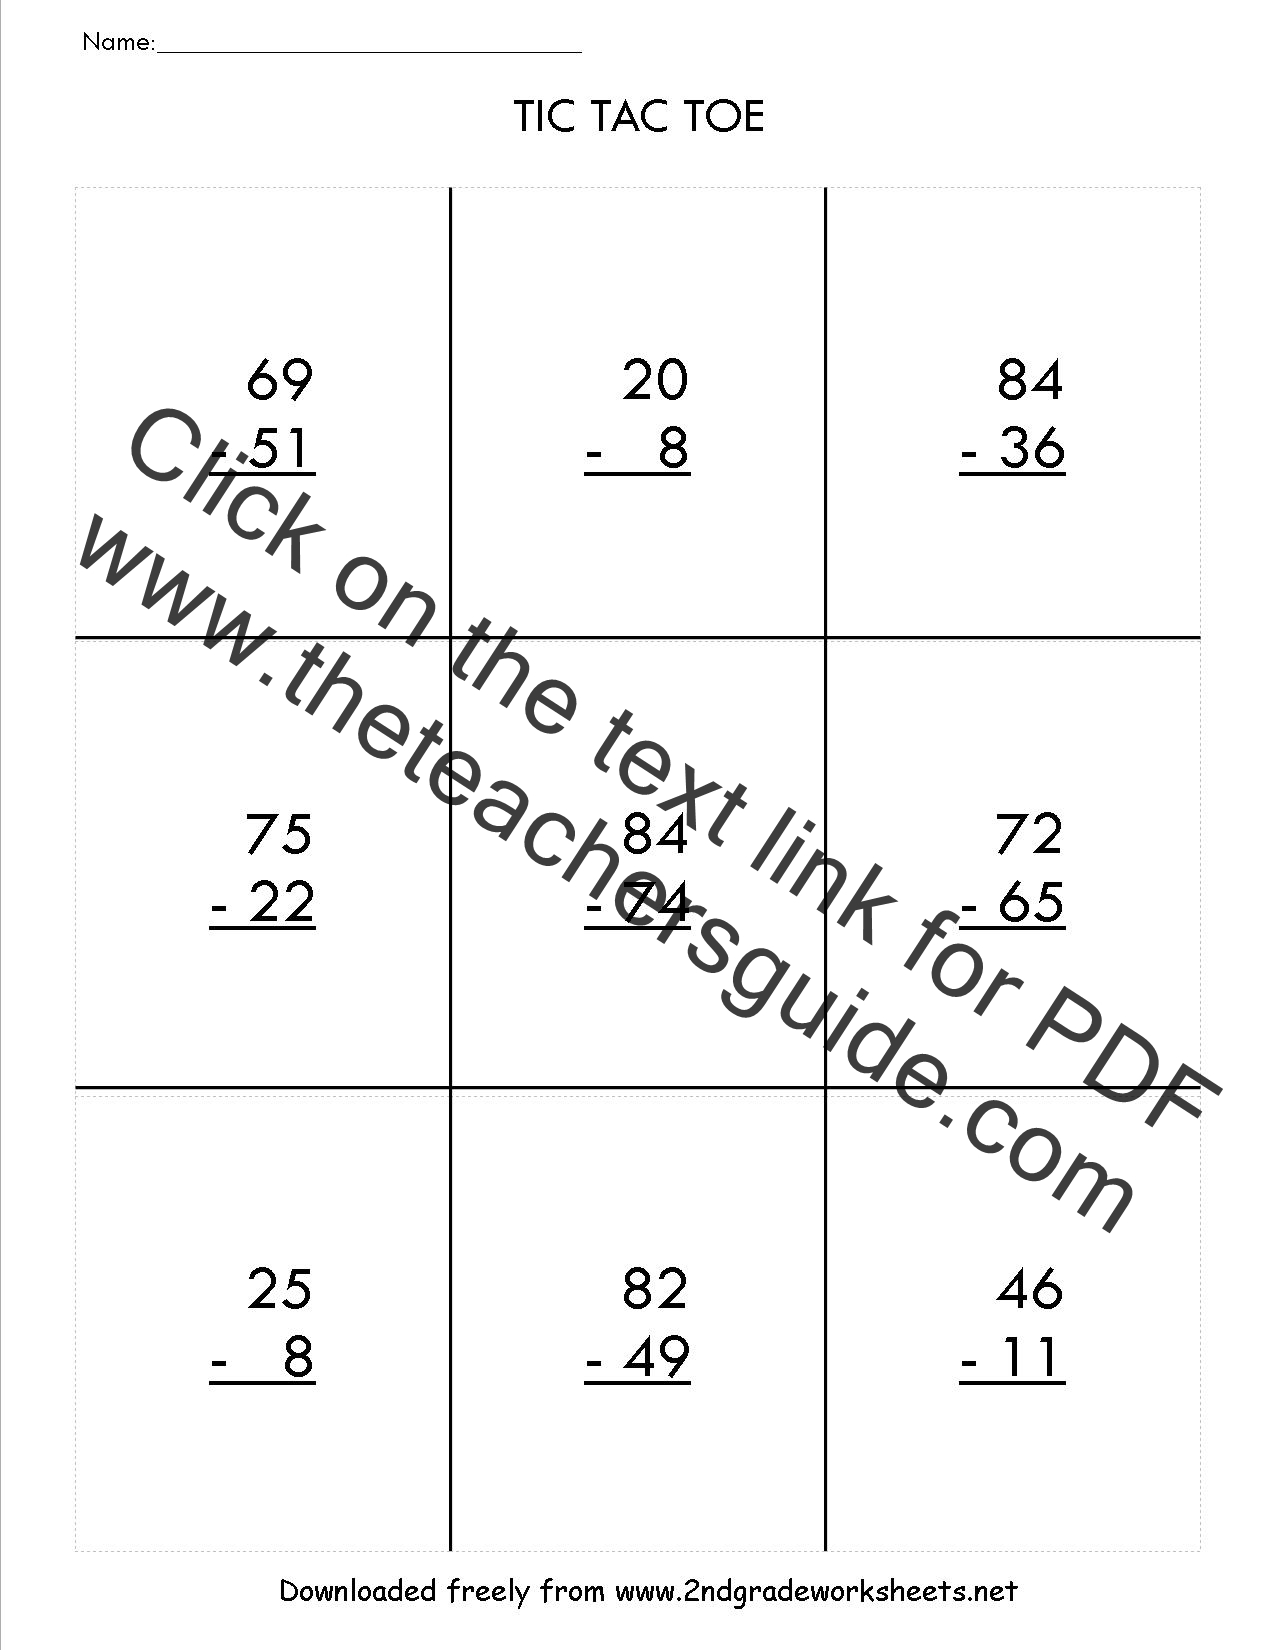 Worksheets Subtraction Regrouping Worksheets two digit subtraction worksheets with regrouping tic tac toe